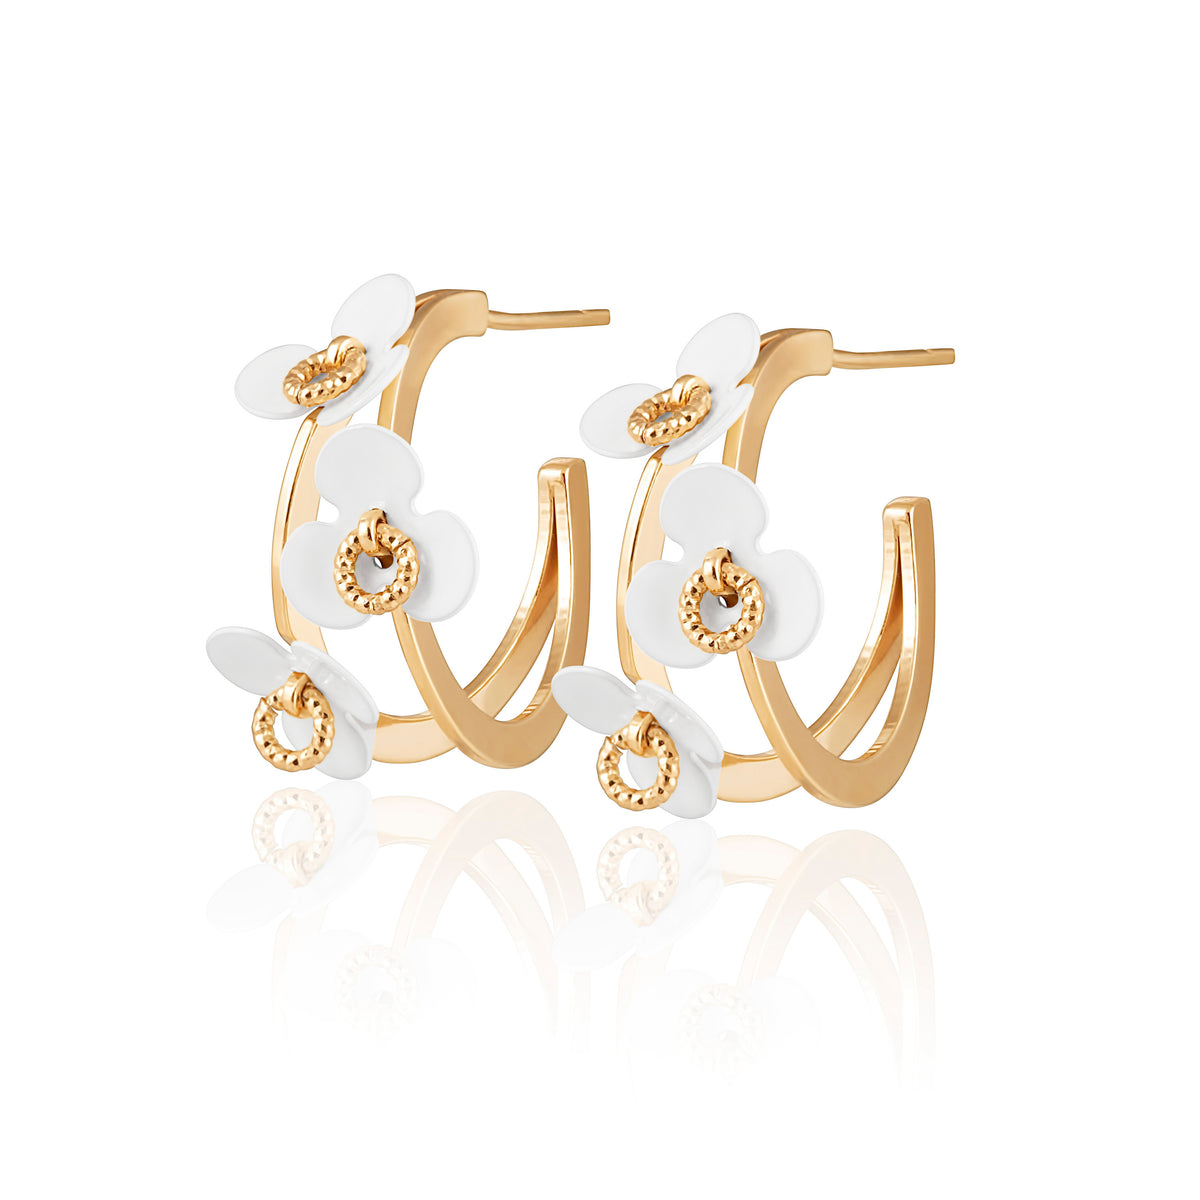 Idalia Jewelry-The Flower Hoop Earrings